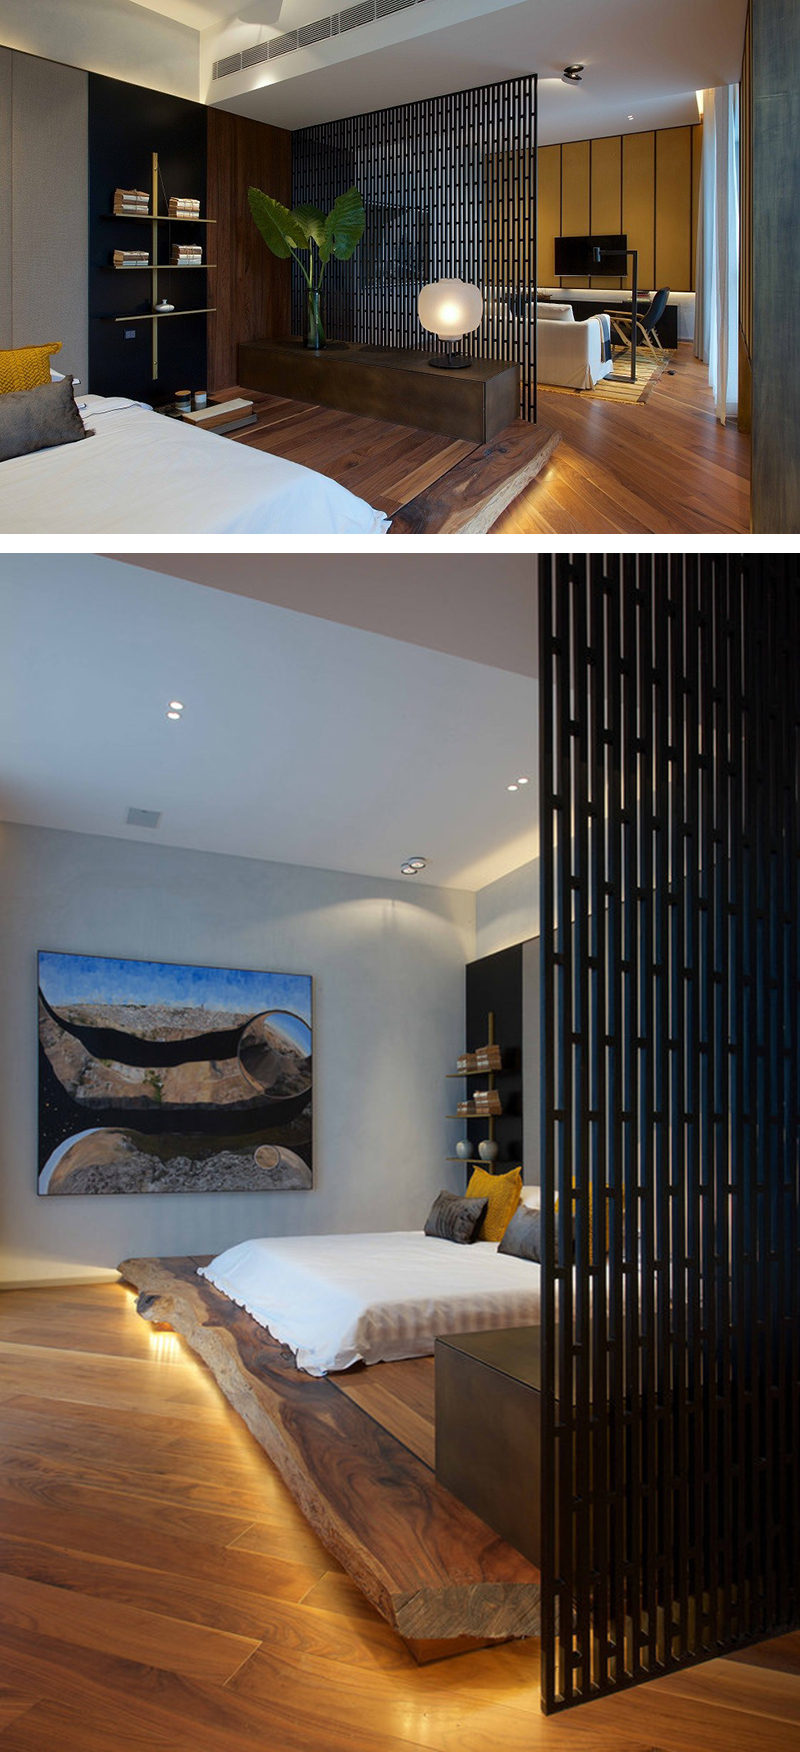 In this small apartment the living room and bedroom share the same area. The bedroom space was separated from the rest of the apartment by using a screen for a divider and placing the bed on a wood platform with hidden LED lighting.